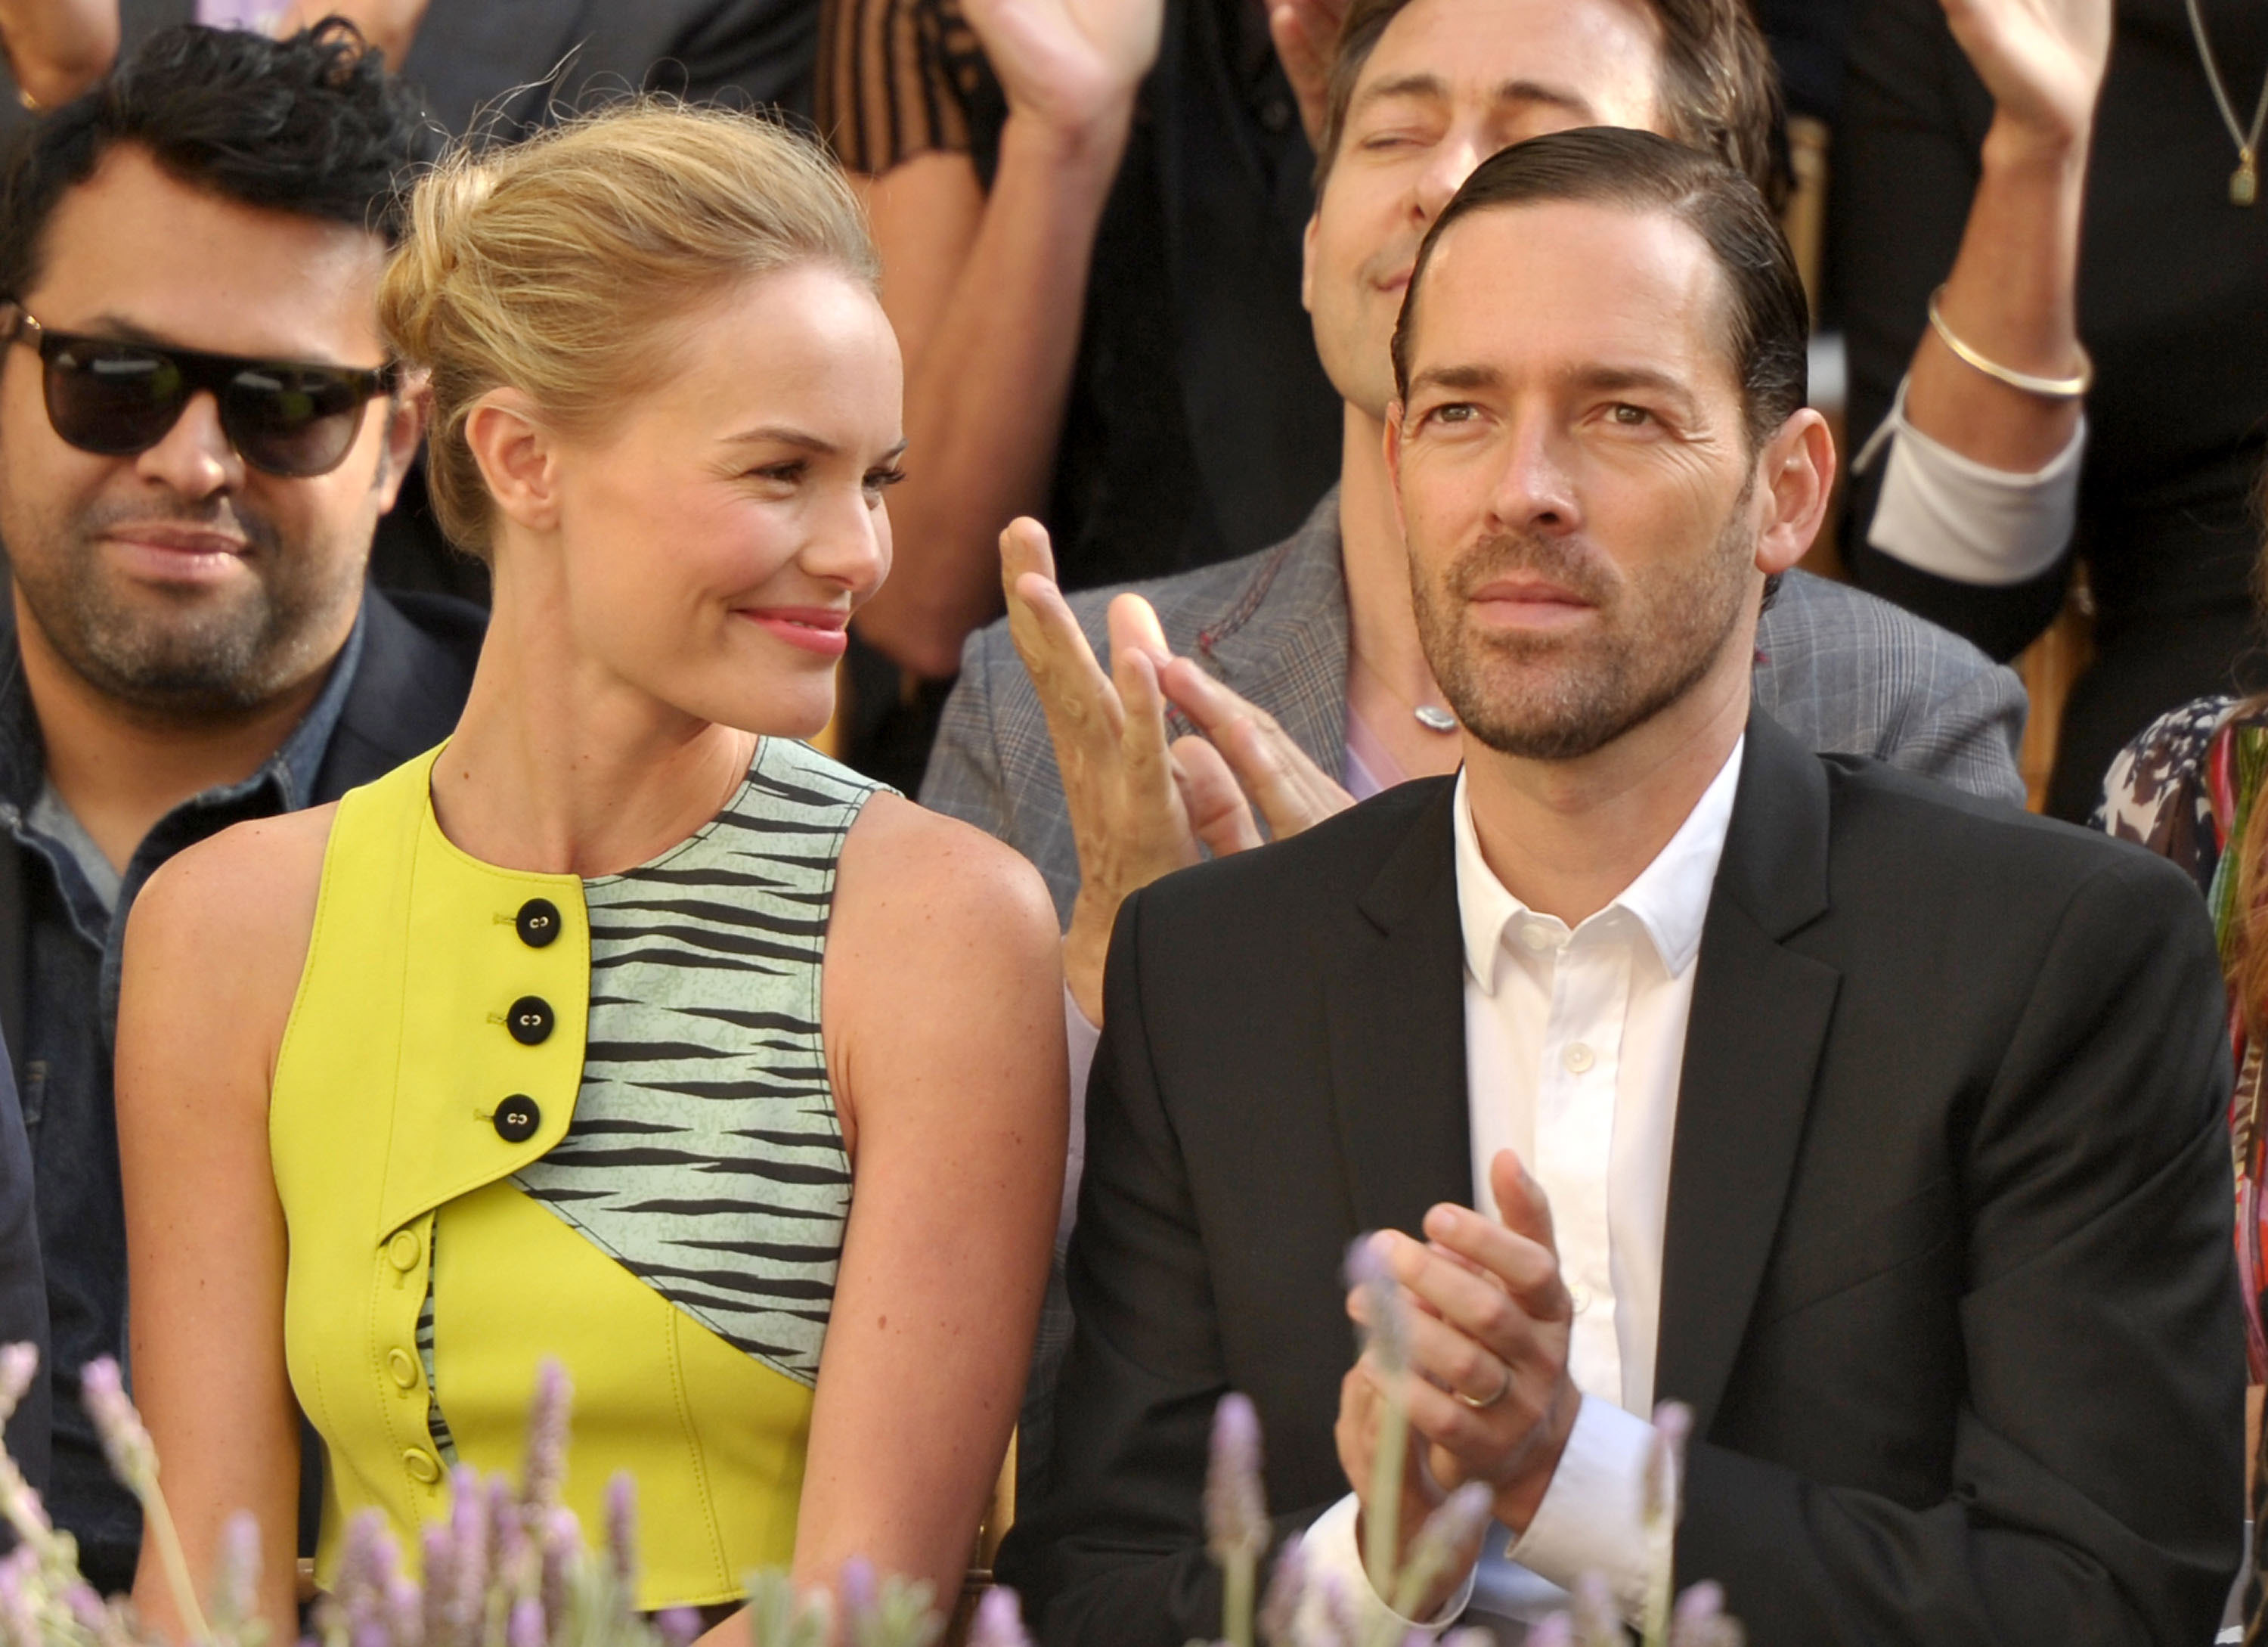 Kate Bosworth and Michael Polish in sleek looks for a Vogue CFDA party.